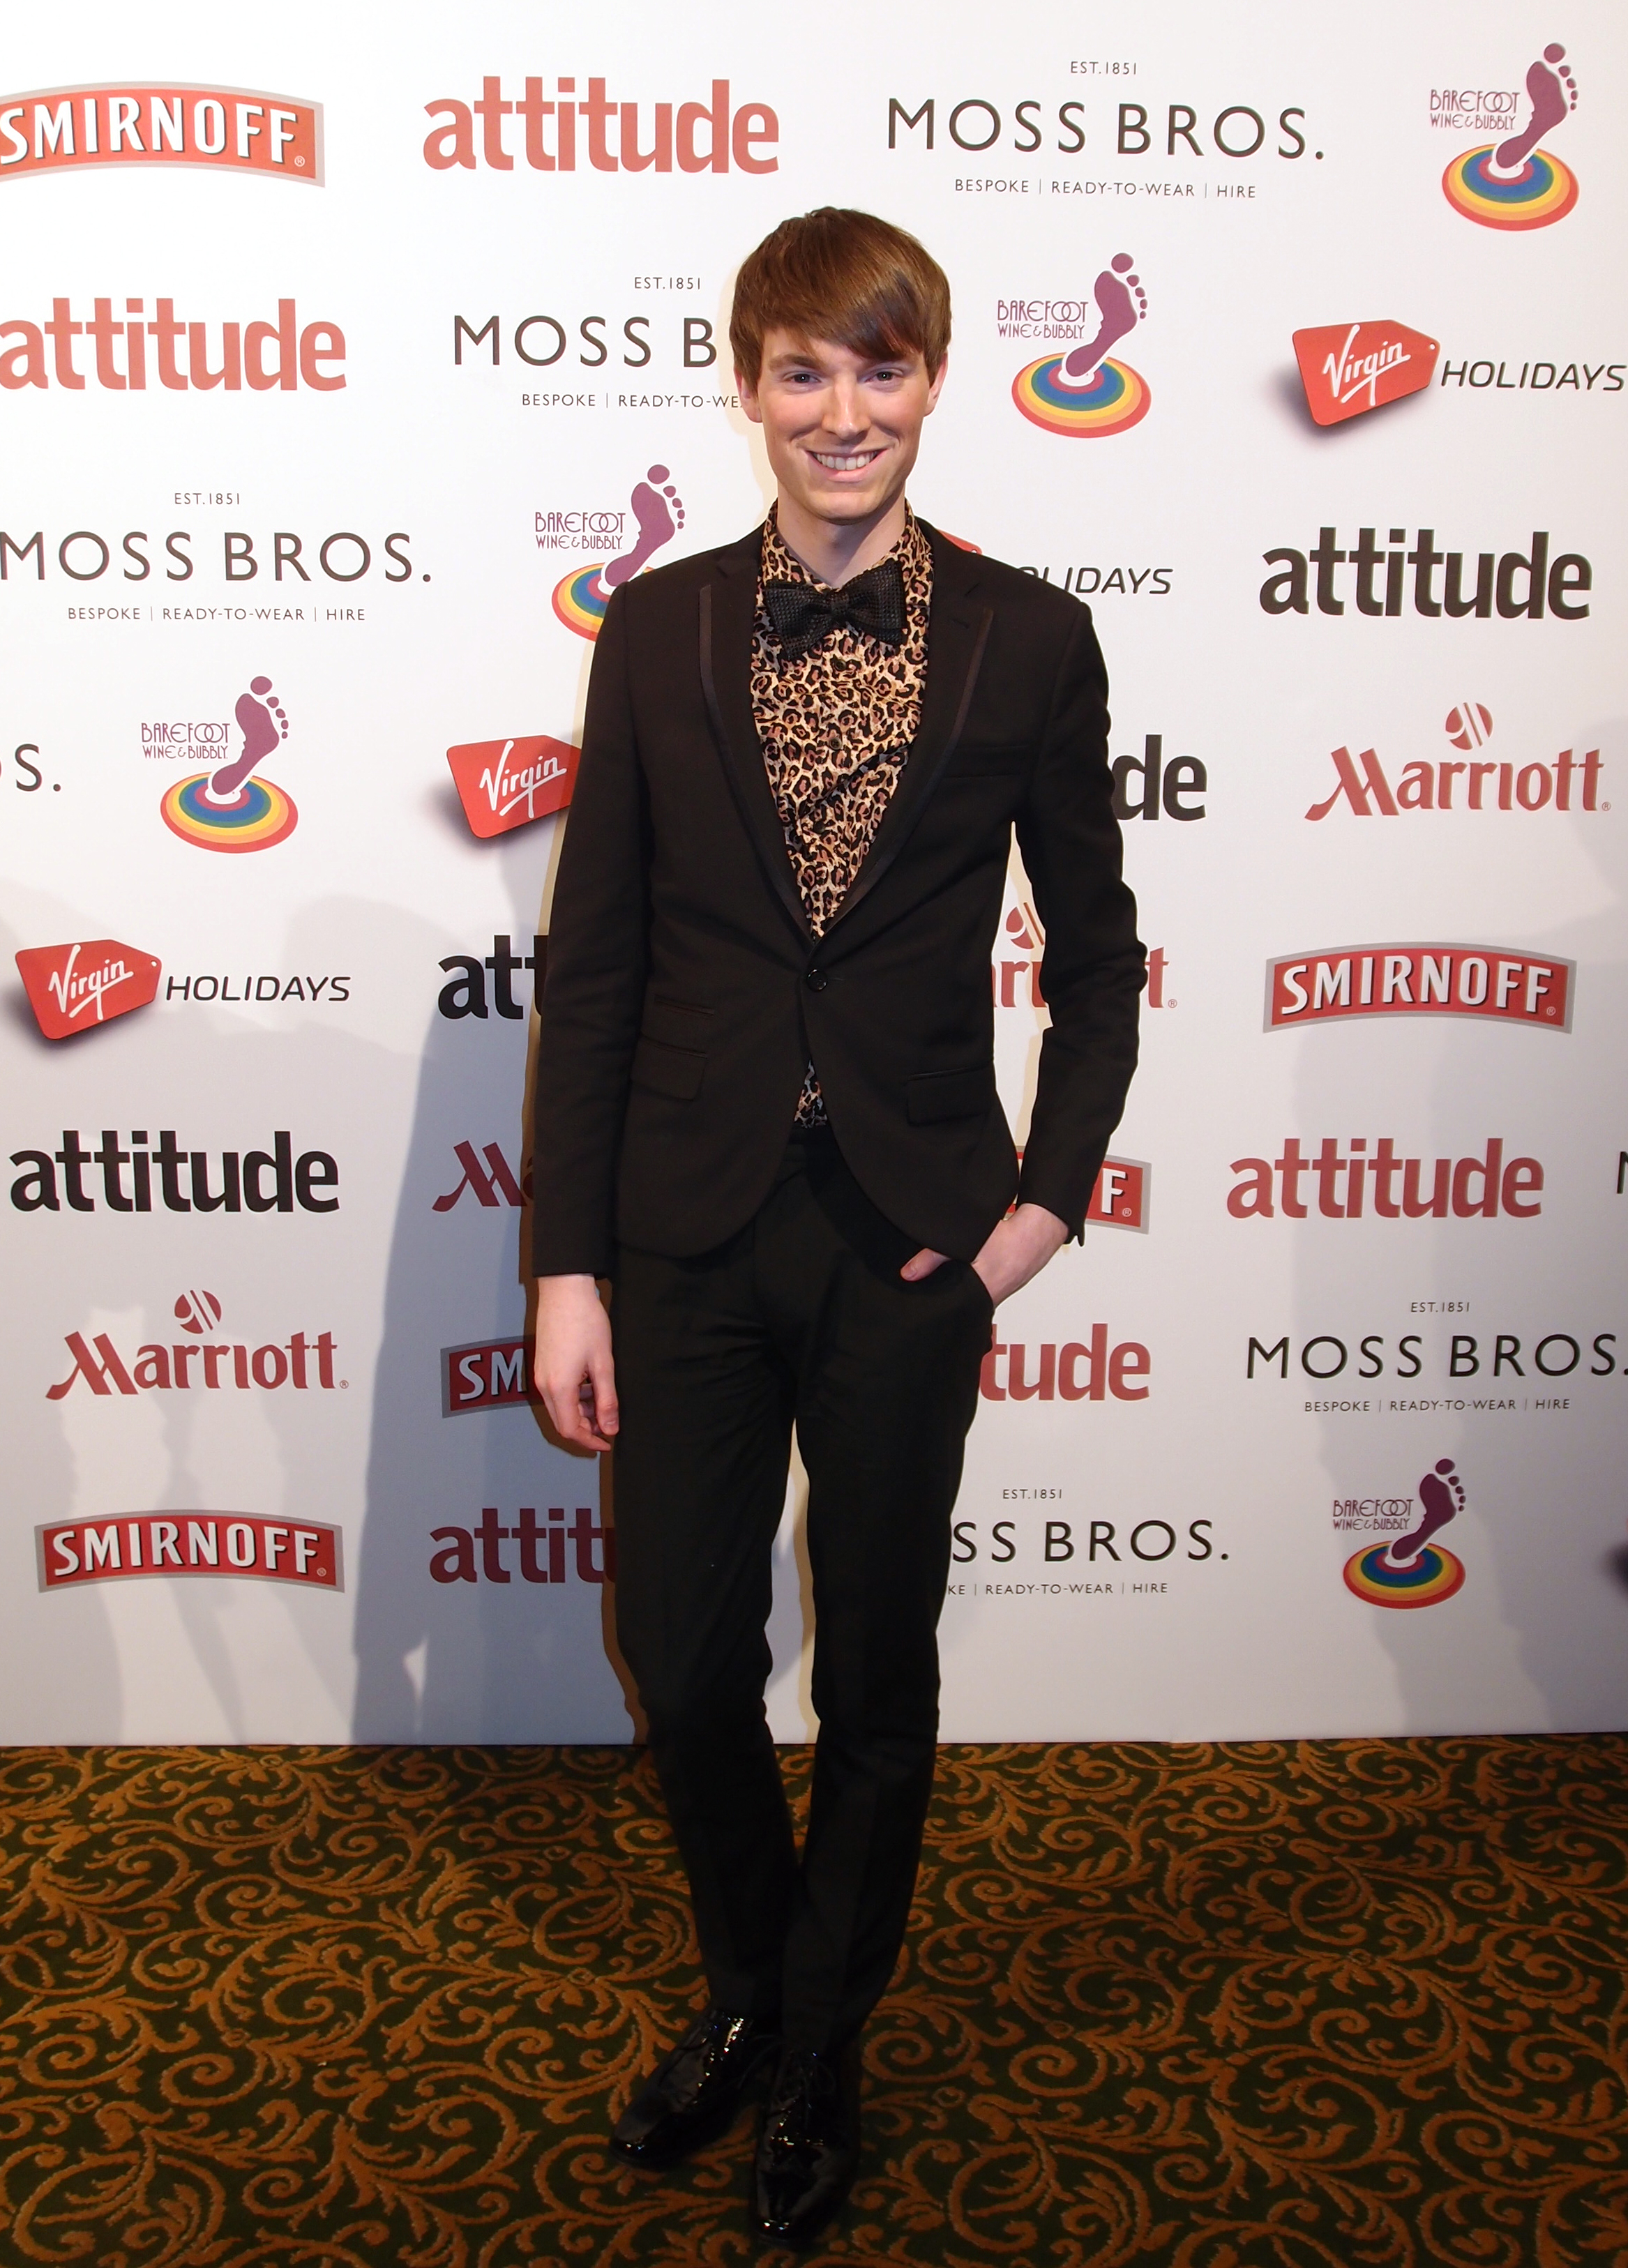 Richard Brownlie-Marshall at Attitude Awards